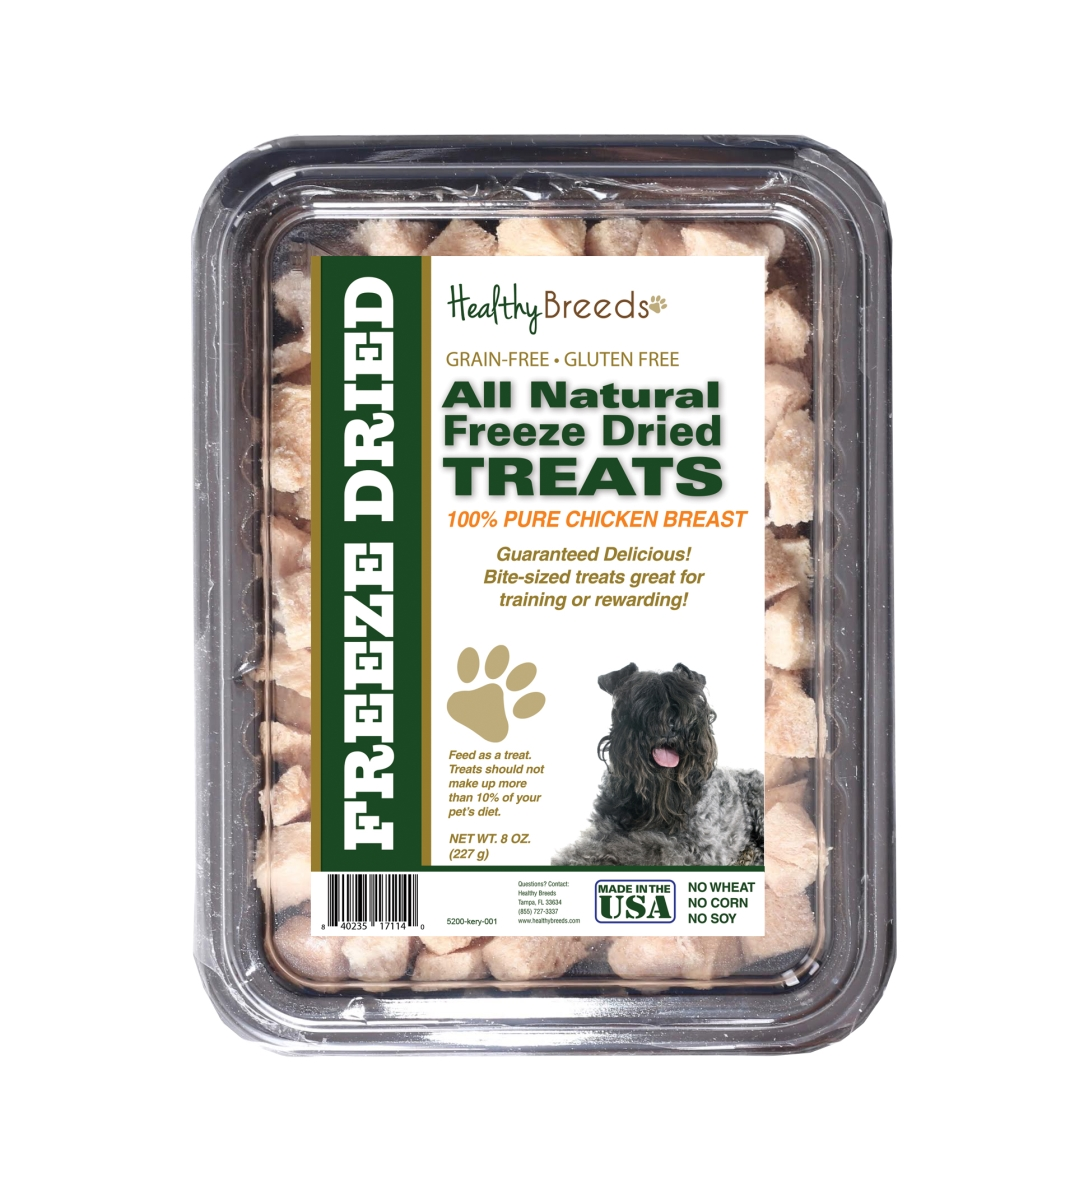 Healthy Breeds 840235171140 8 oz Kerry Blue Terrier All Natural Freeze Dried Treats Chicken Breast